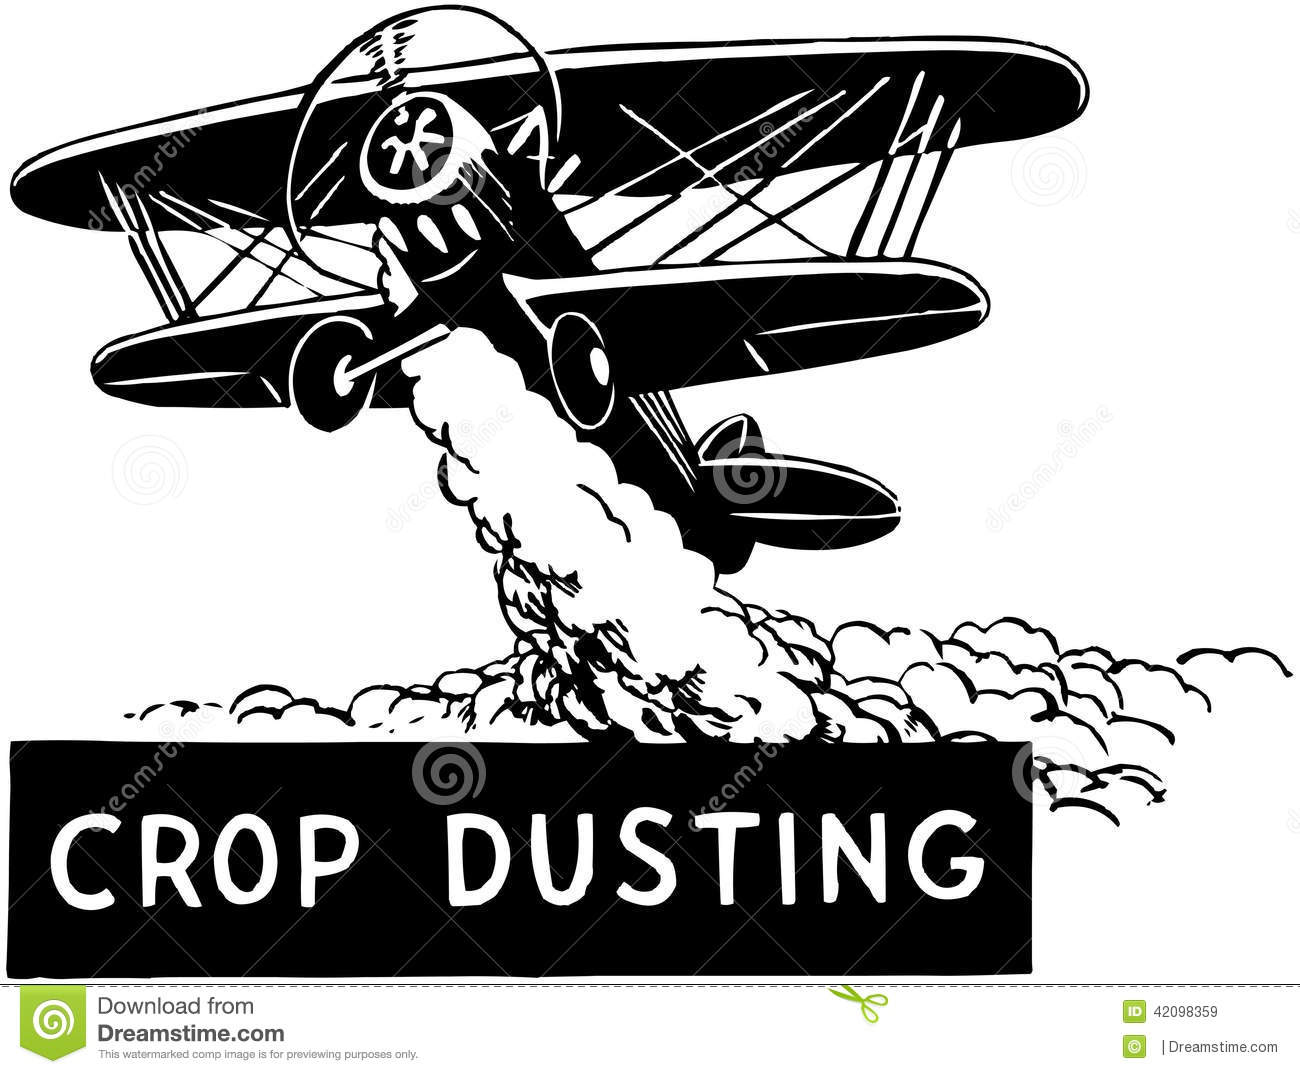 Crop duster clipart Clipground